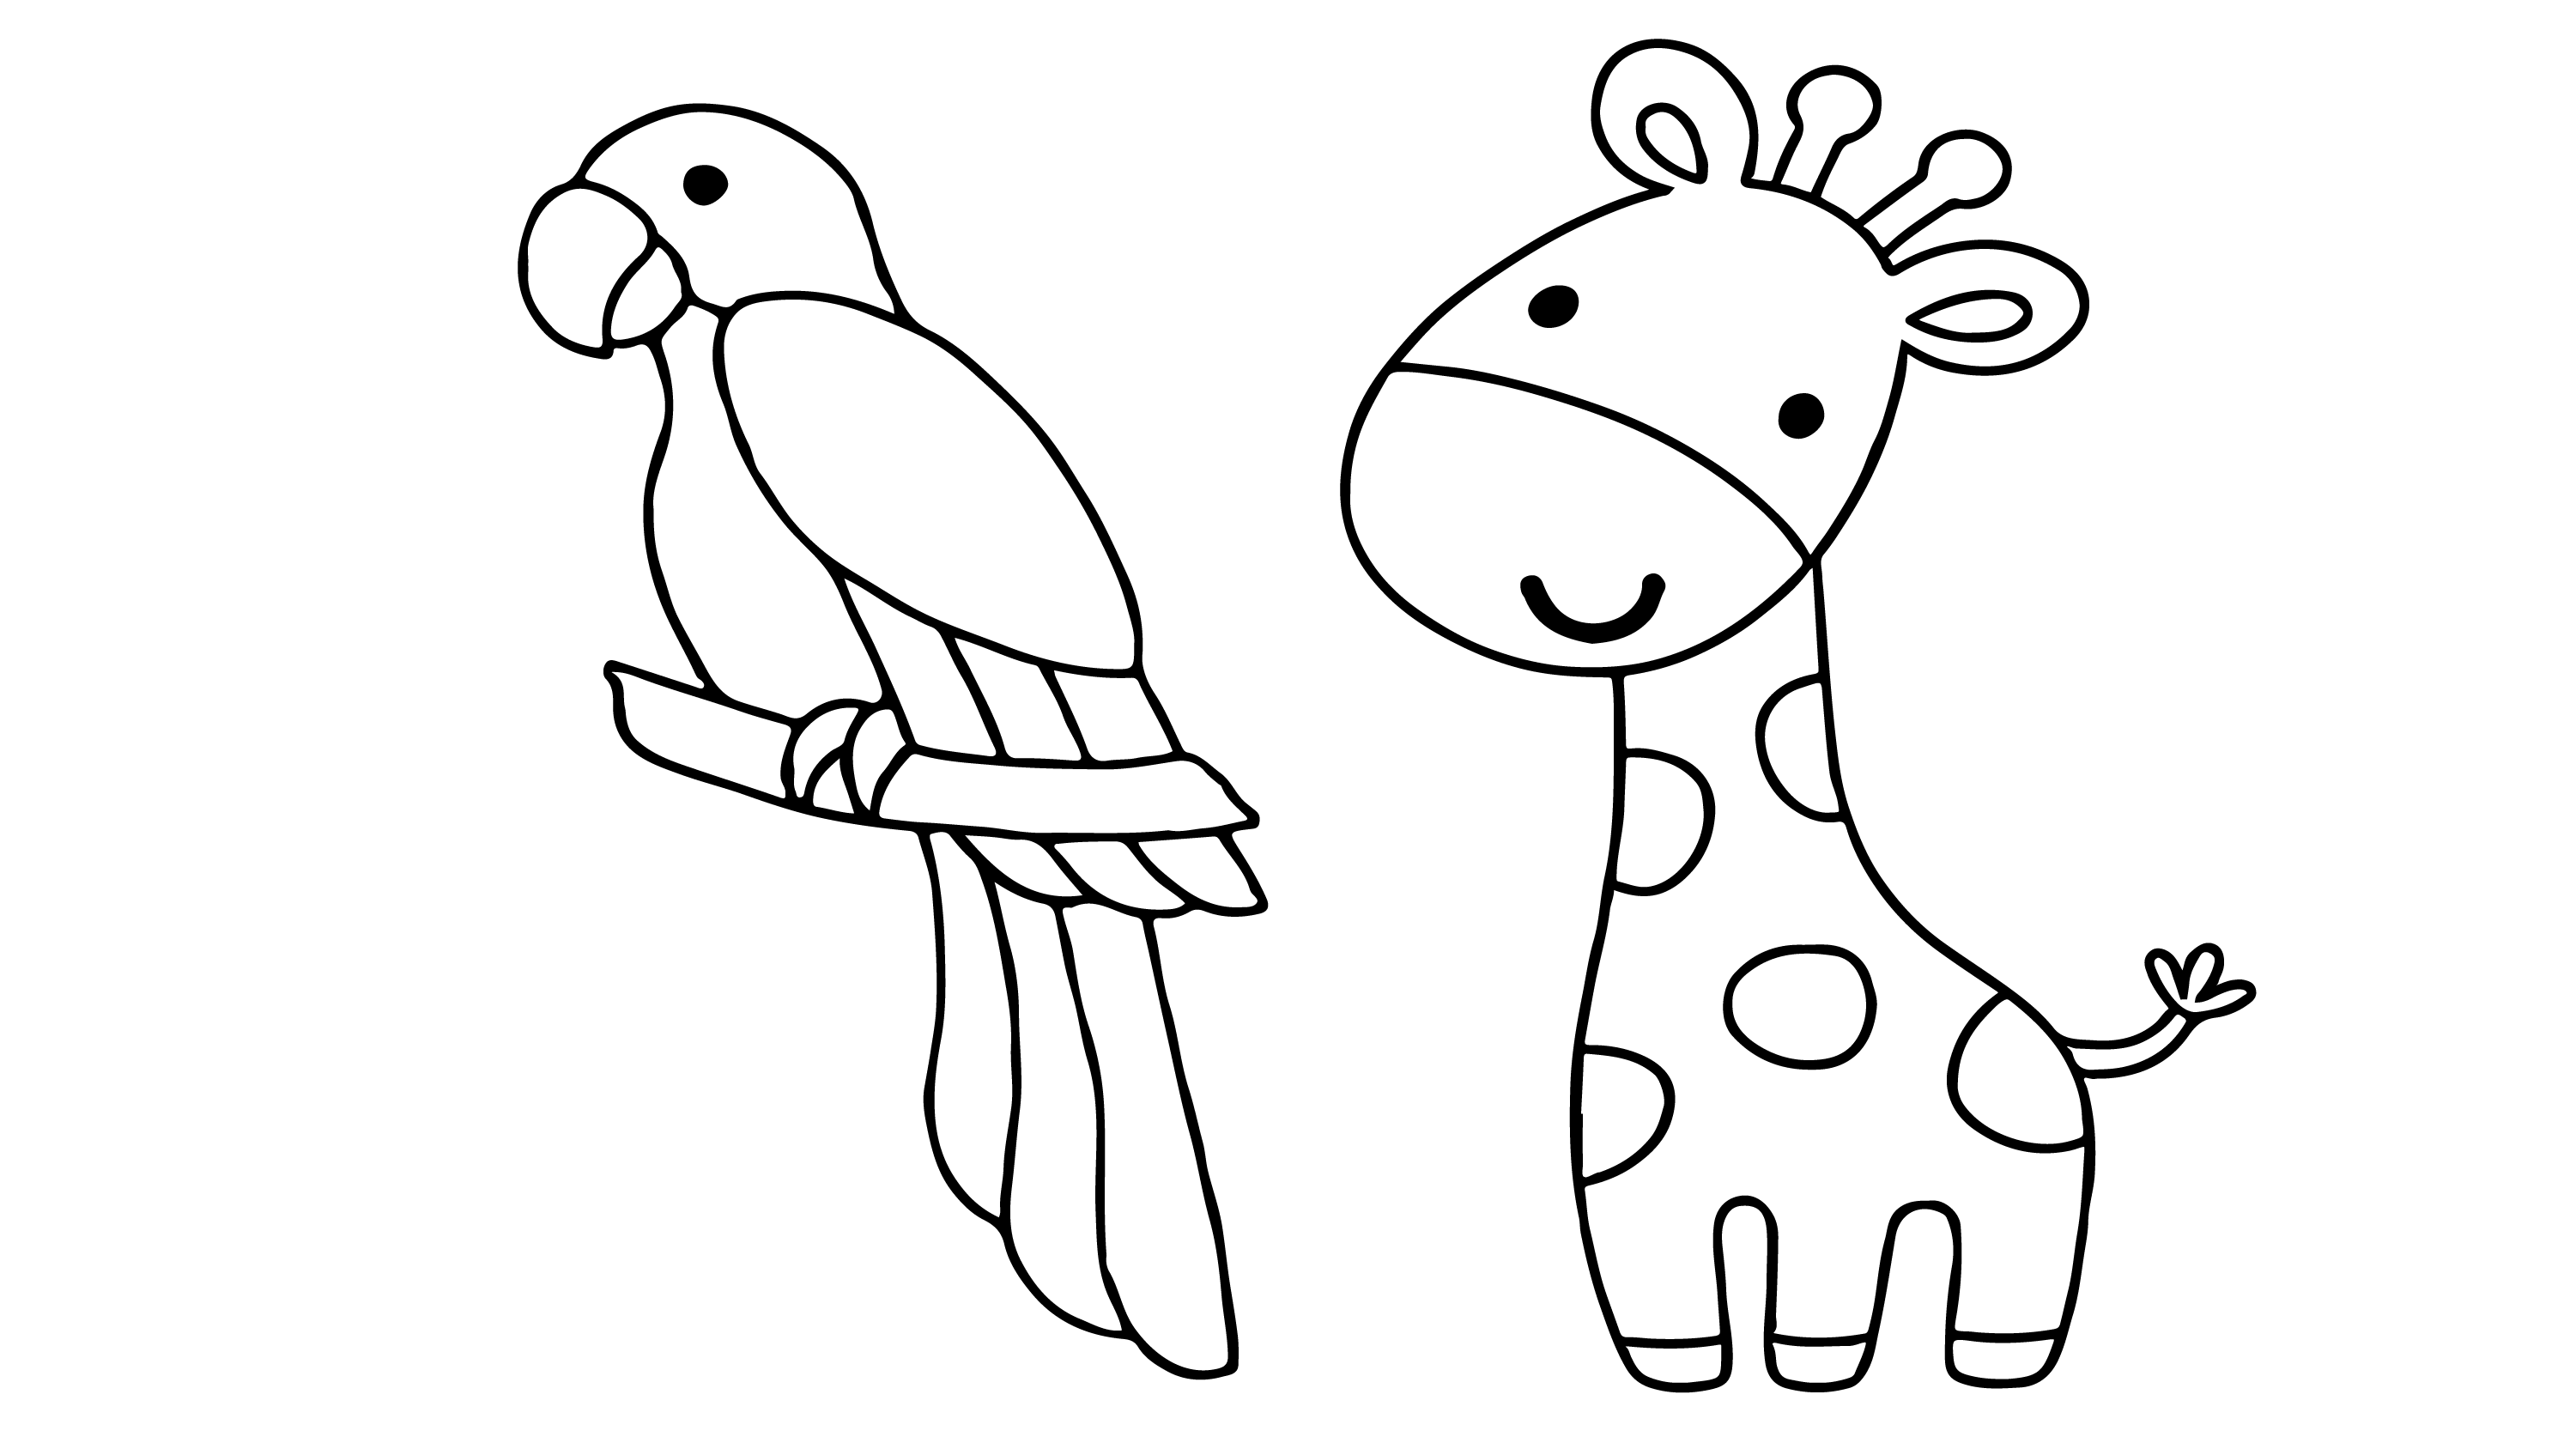 Coloring Page Coloring Videos For Kids Coloring Games Coloring Pages Coloring Games For Kids Coloring For Kids